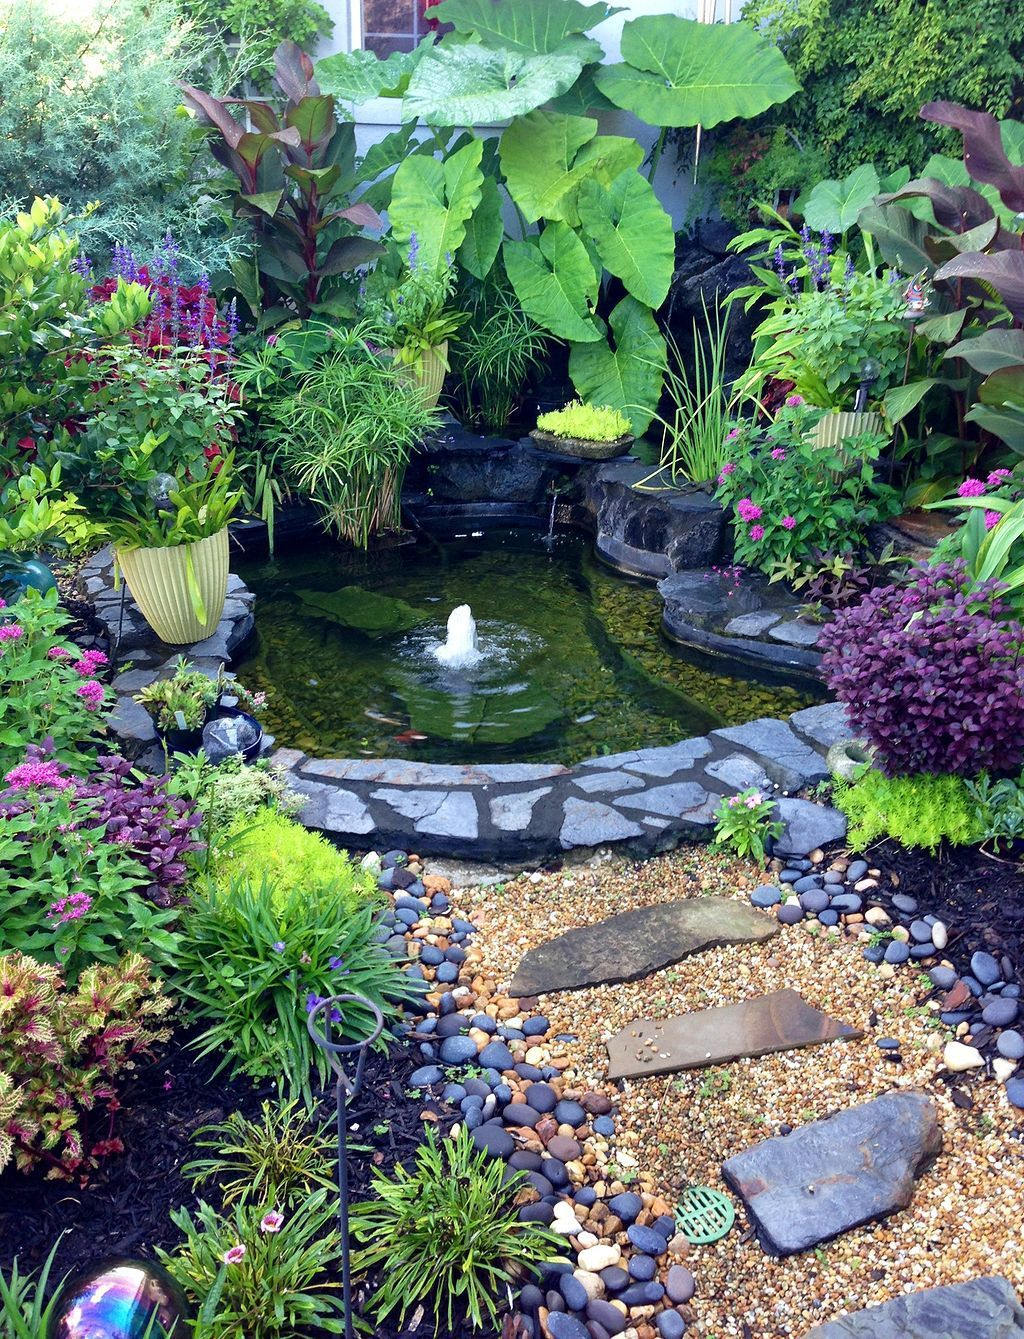 Tiny Backyard Ponds Ideas For Your Small Garden 19 | Small gardens ...